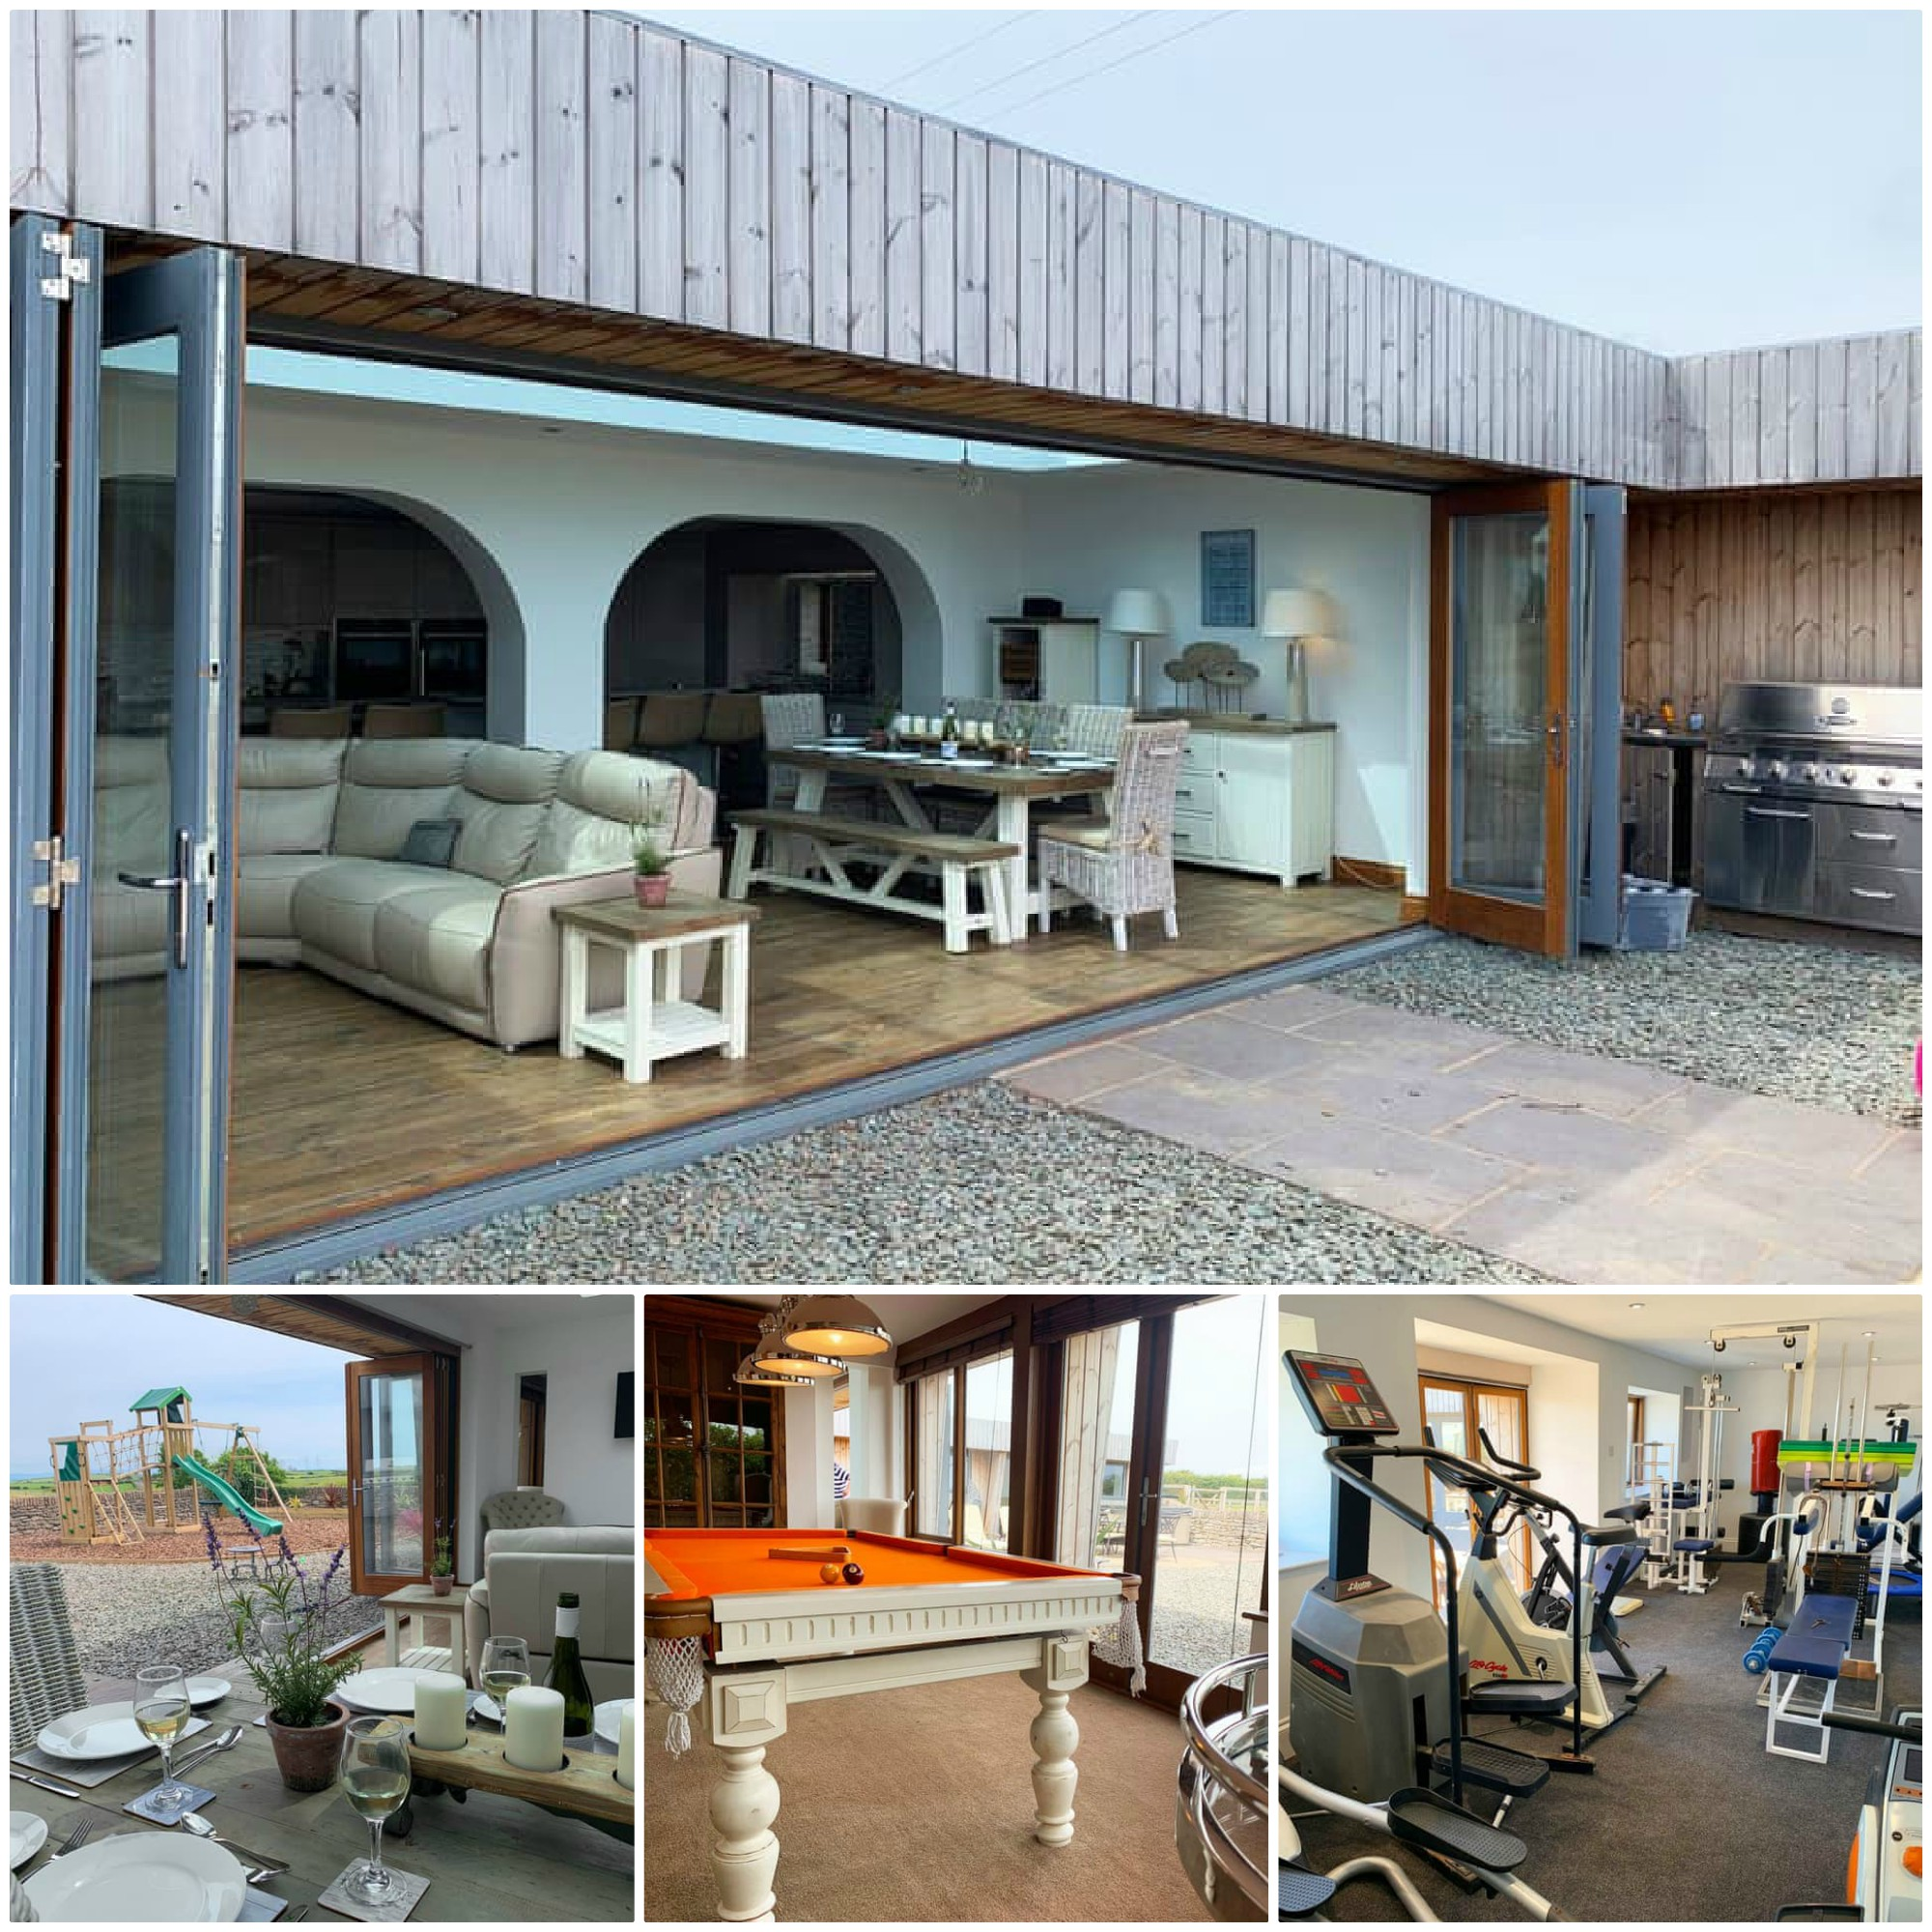 Sleeps 18 - 4 pets allowed (plus stabling available at additional cost)